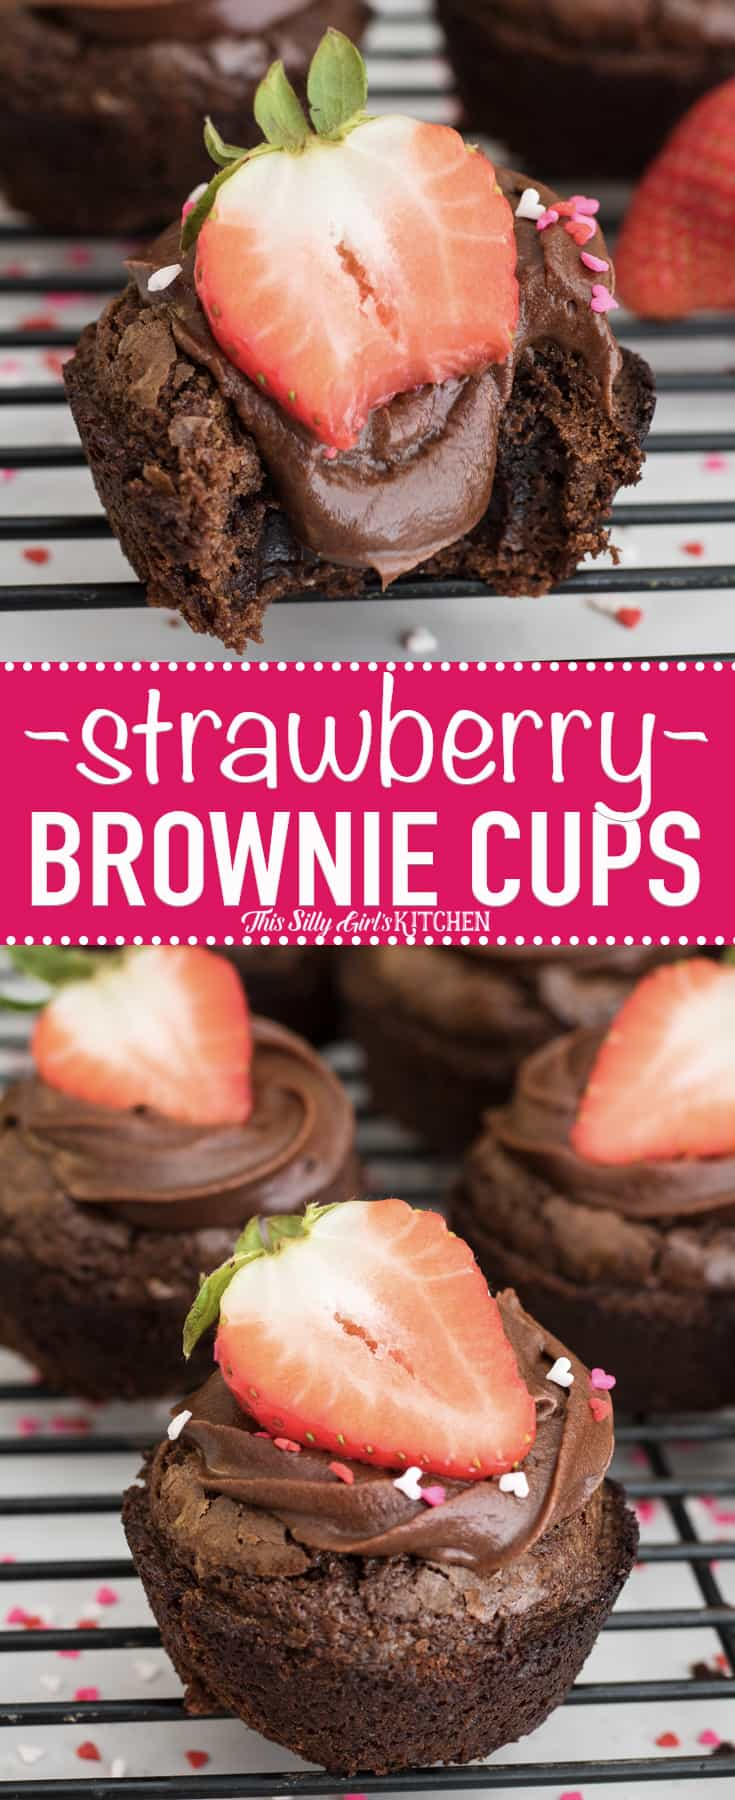 Strawberry Brownie Cups, an easy yet delicious treat for your Valentine! #Recipe from ThisSillyGirlsKitchen.com #brownie #strawberry #chocolate